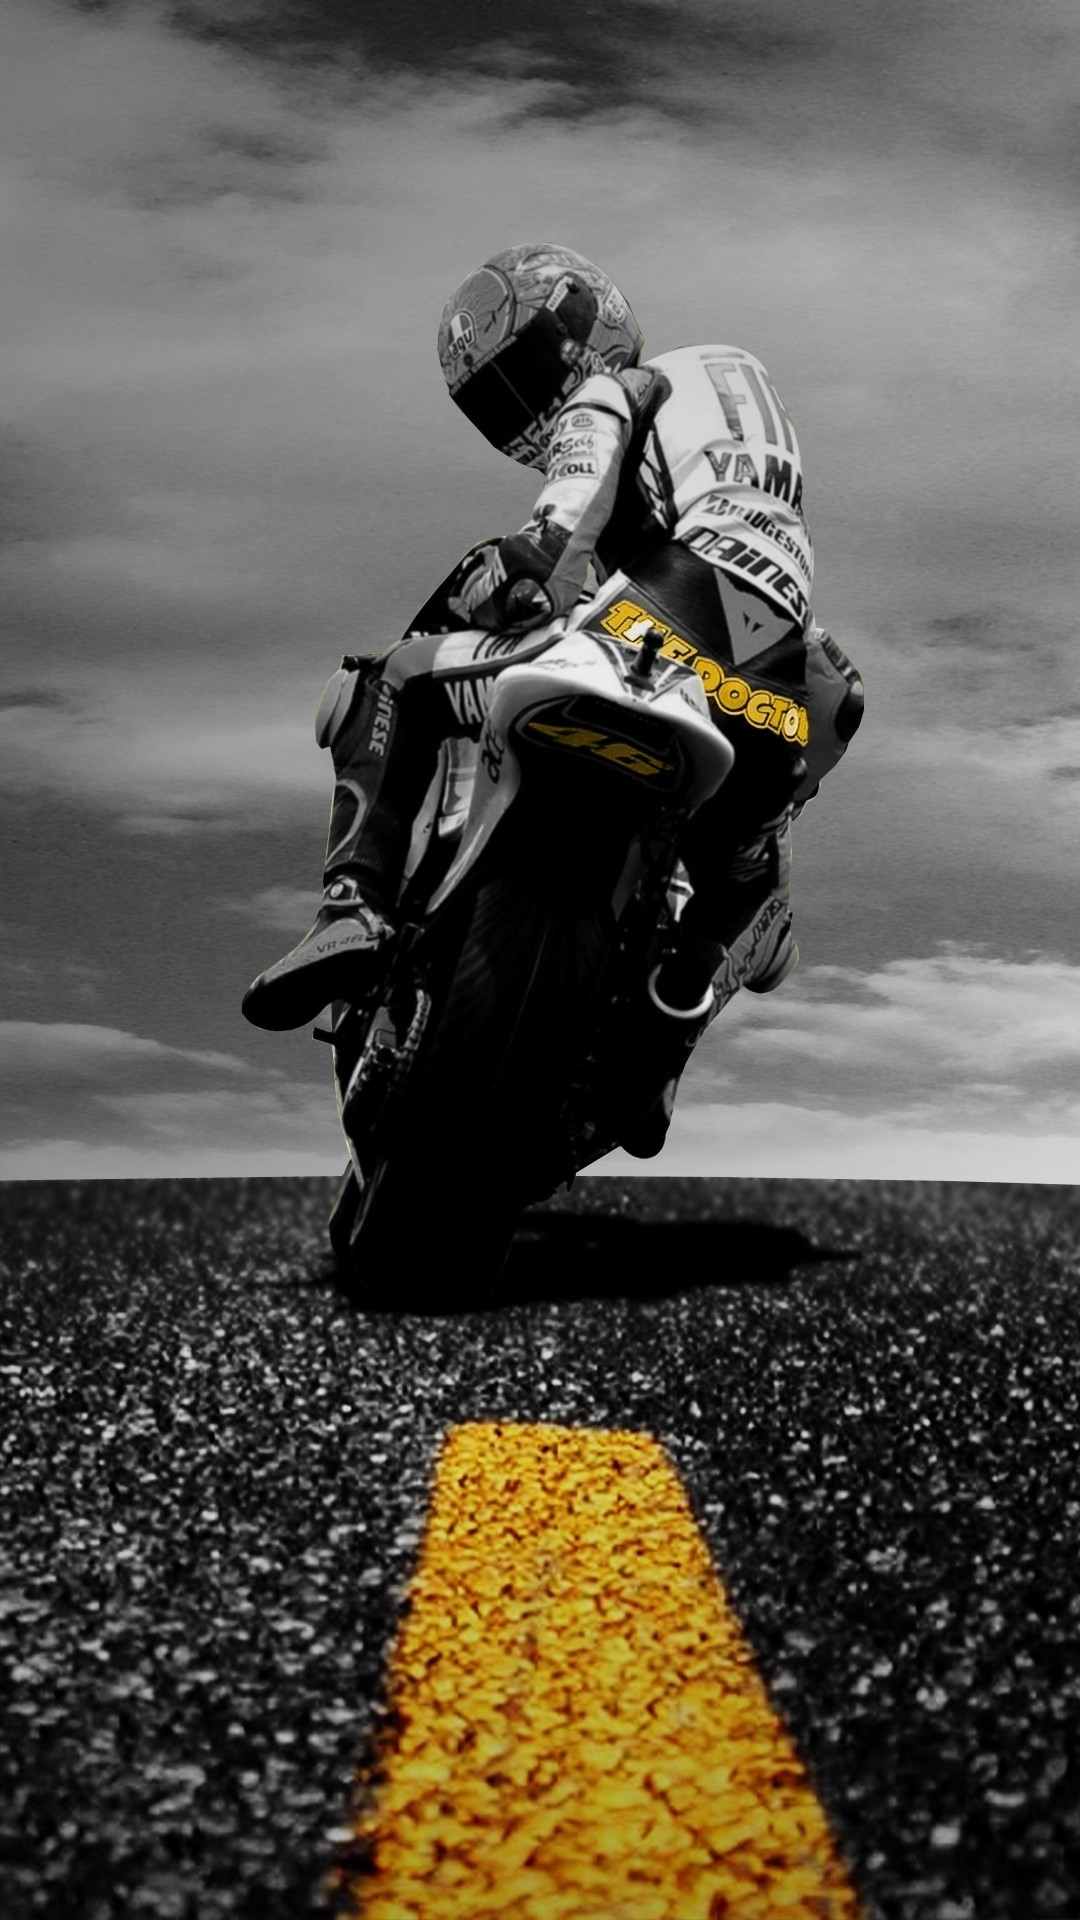 motorcycle phone wallpaper (76+ images)